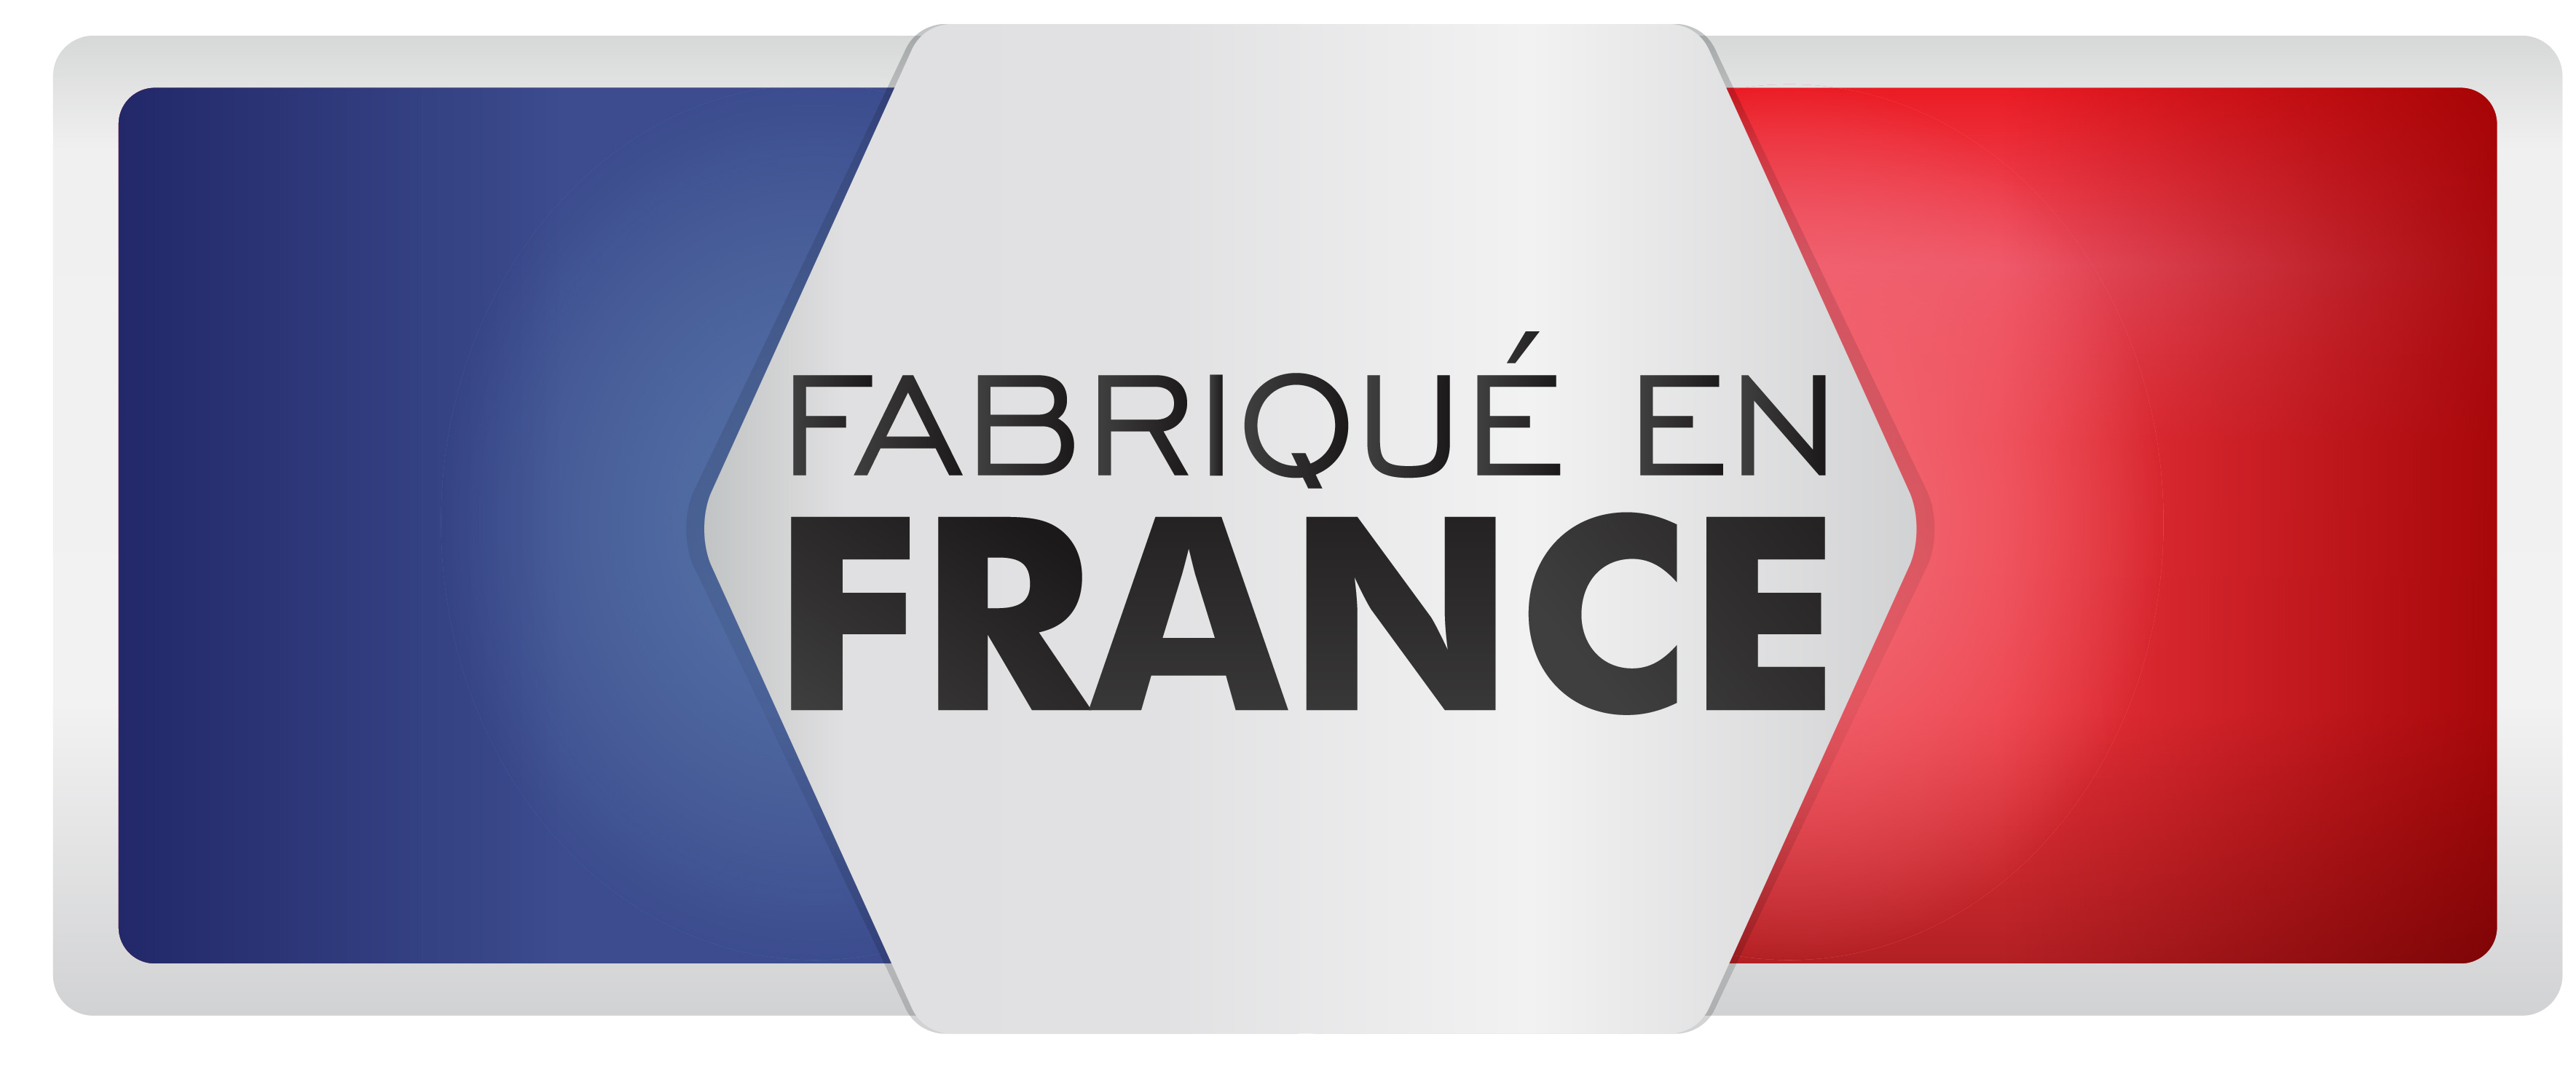 fabrication%20francaise%20dmc%20direct.j